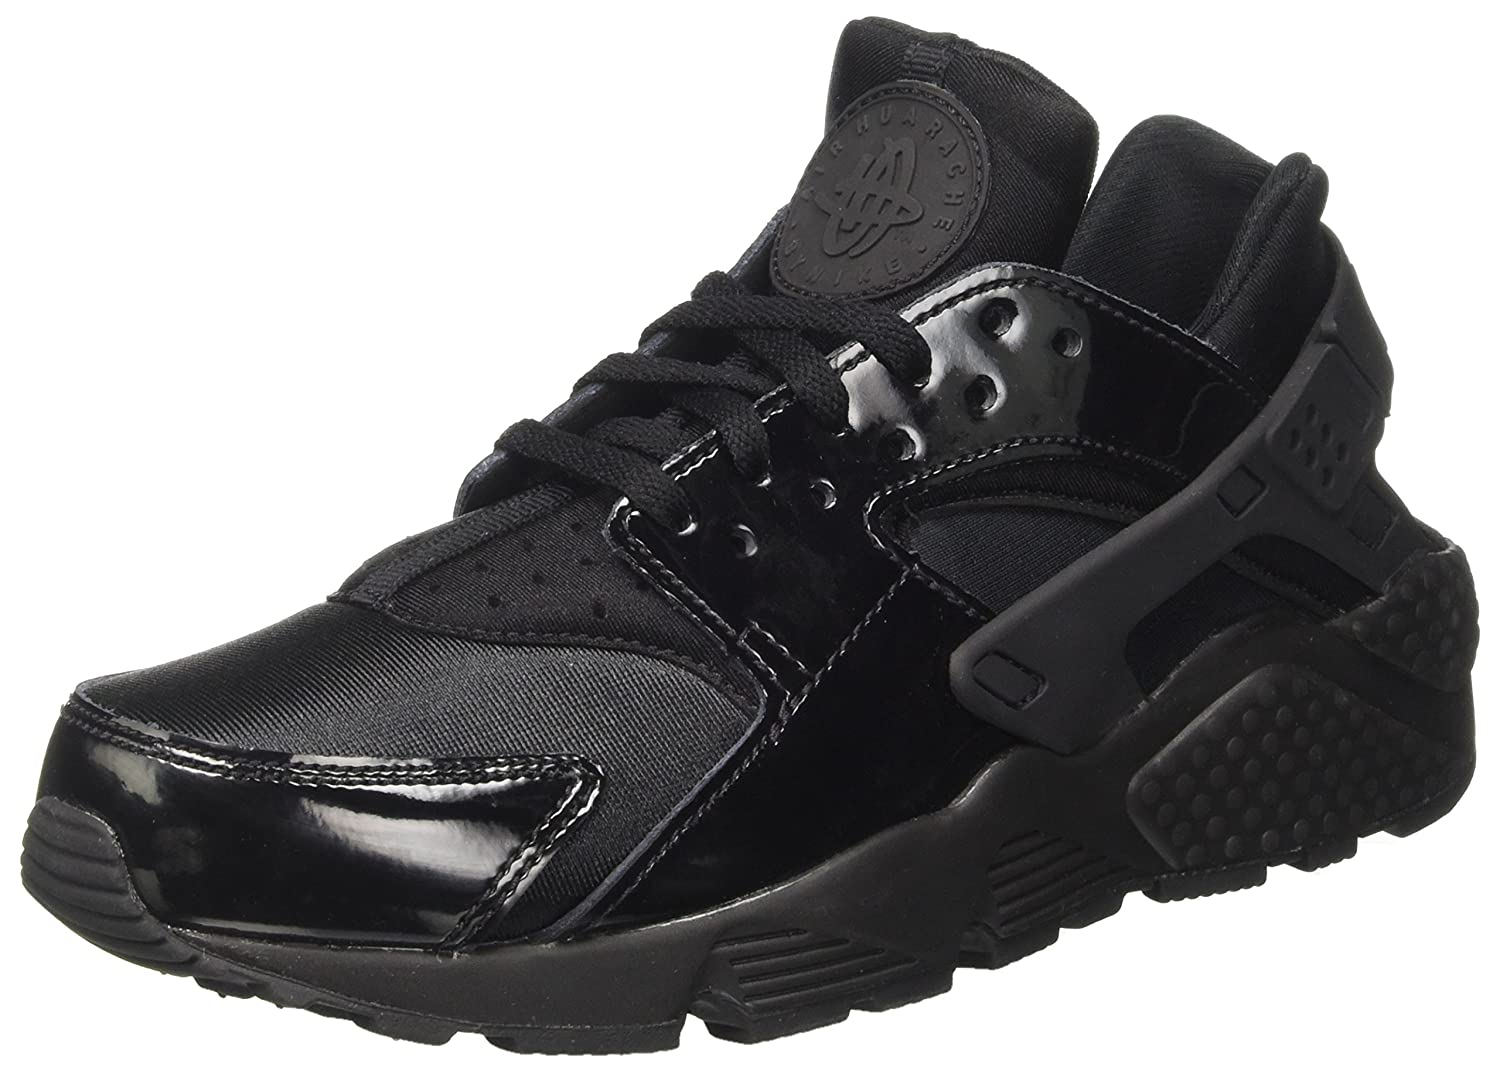 8 NIKE WMNS Air Huarache Run Casual Sneakers Women Black 634835-026 New